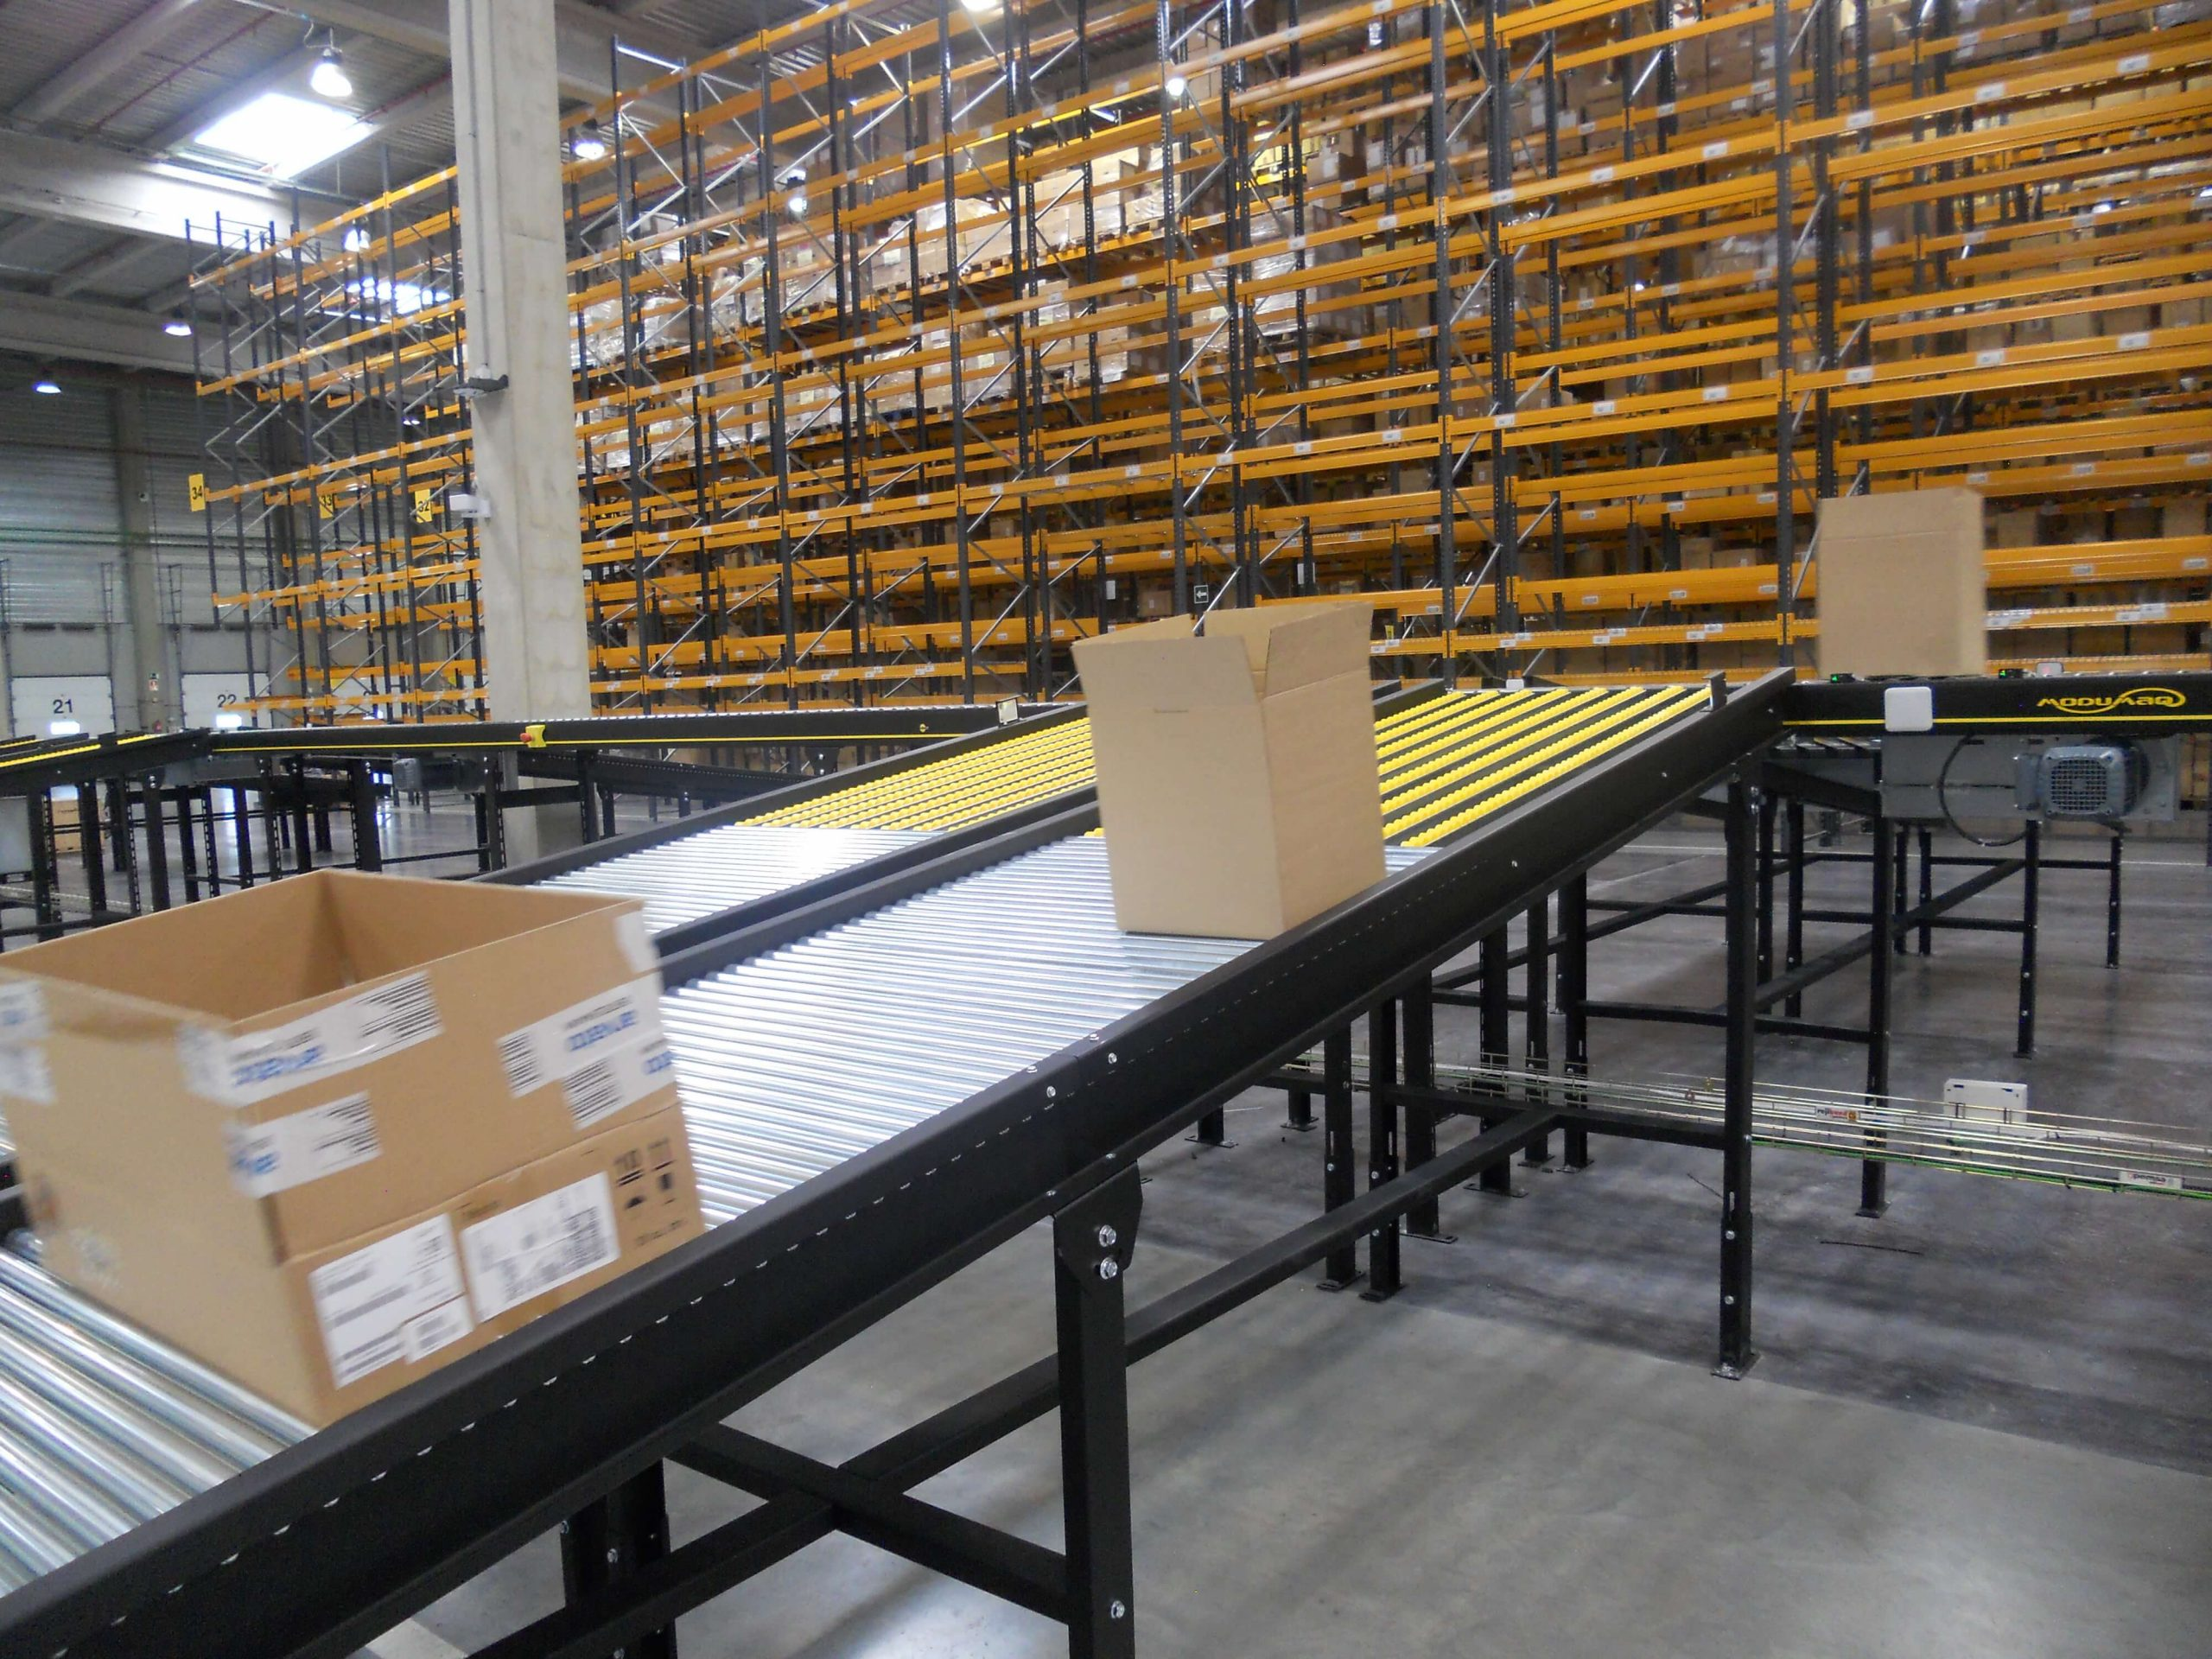 Modumaq installs a novedous shipping and package classifier for arvato bertelsmann spain